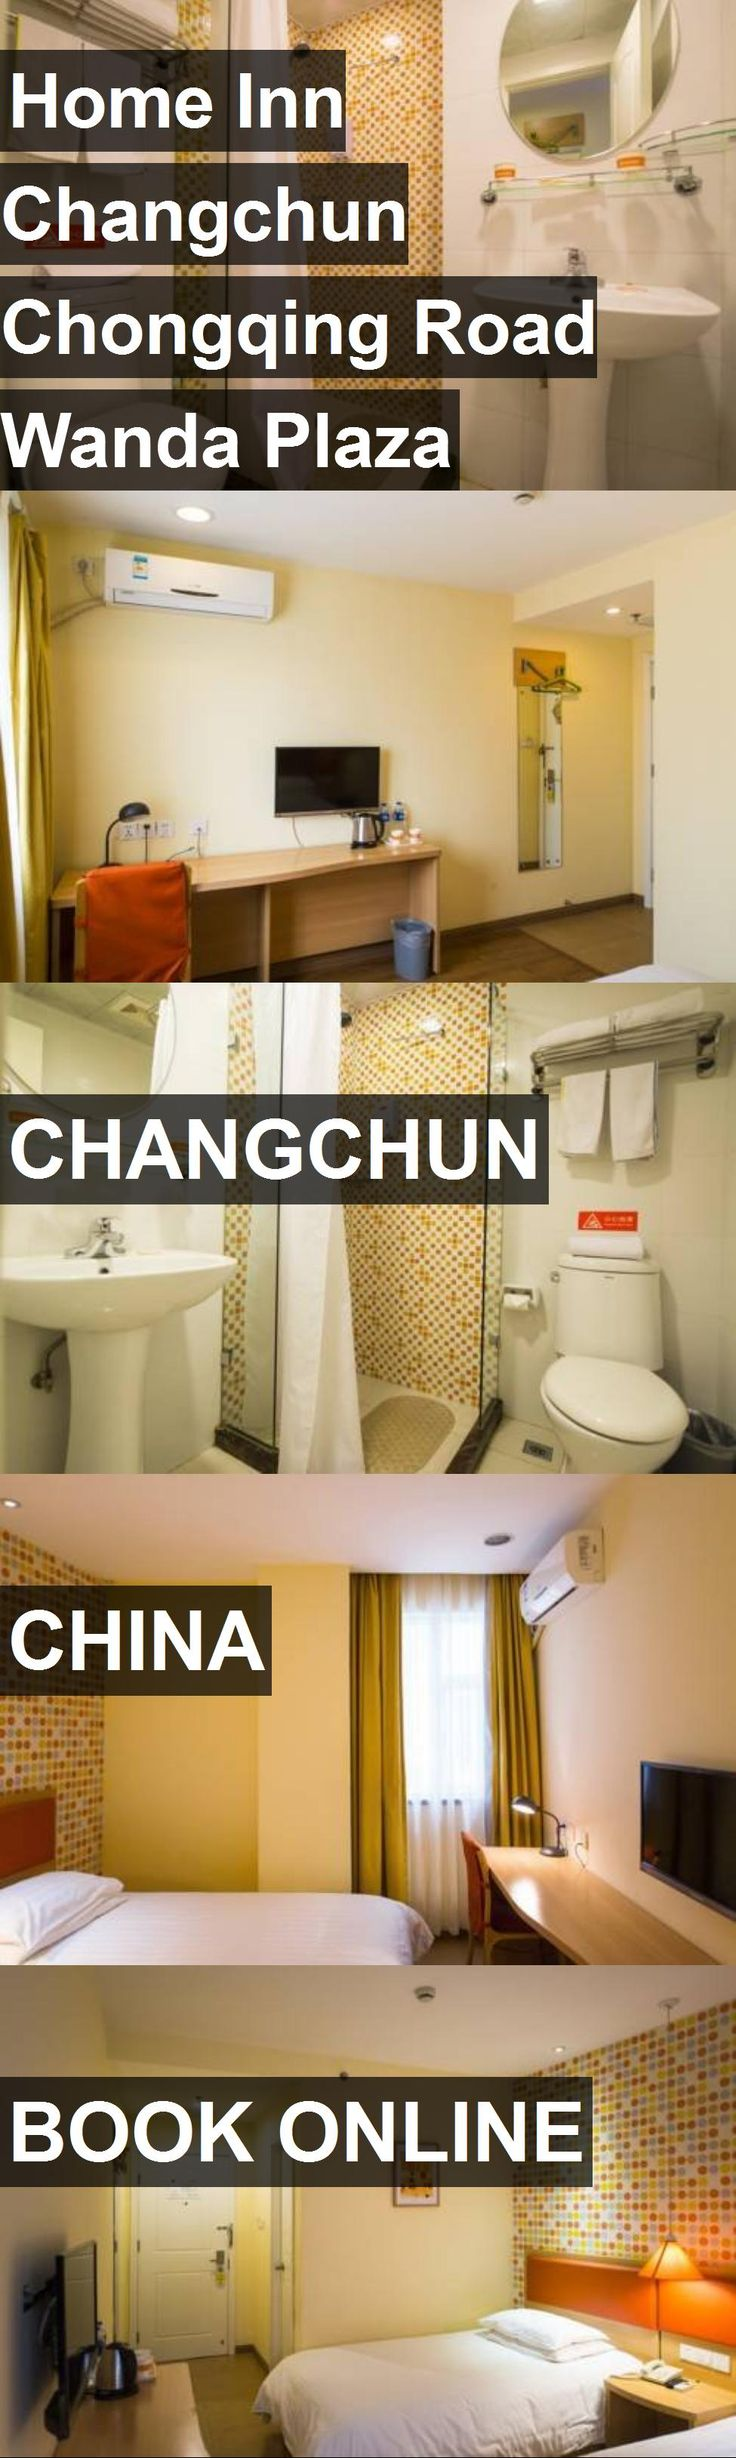 Hotel Home Inn Changchun Chongqing Road Wanda Plaza in Changchun, China. For more information, photos, reviews and best prices please follow the link. #China #Changchun #travel #vacation #hotel